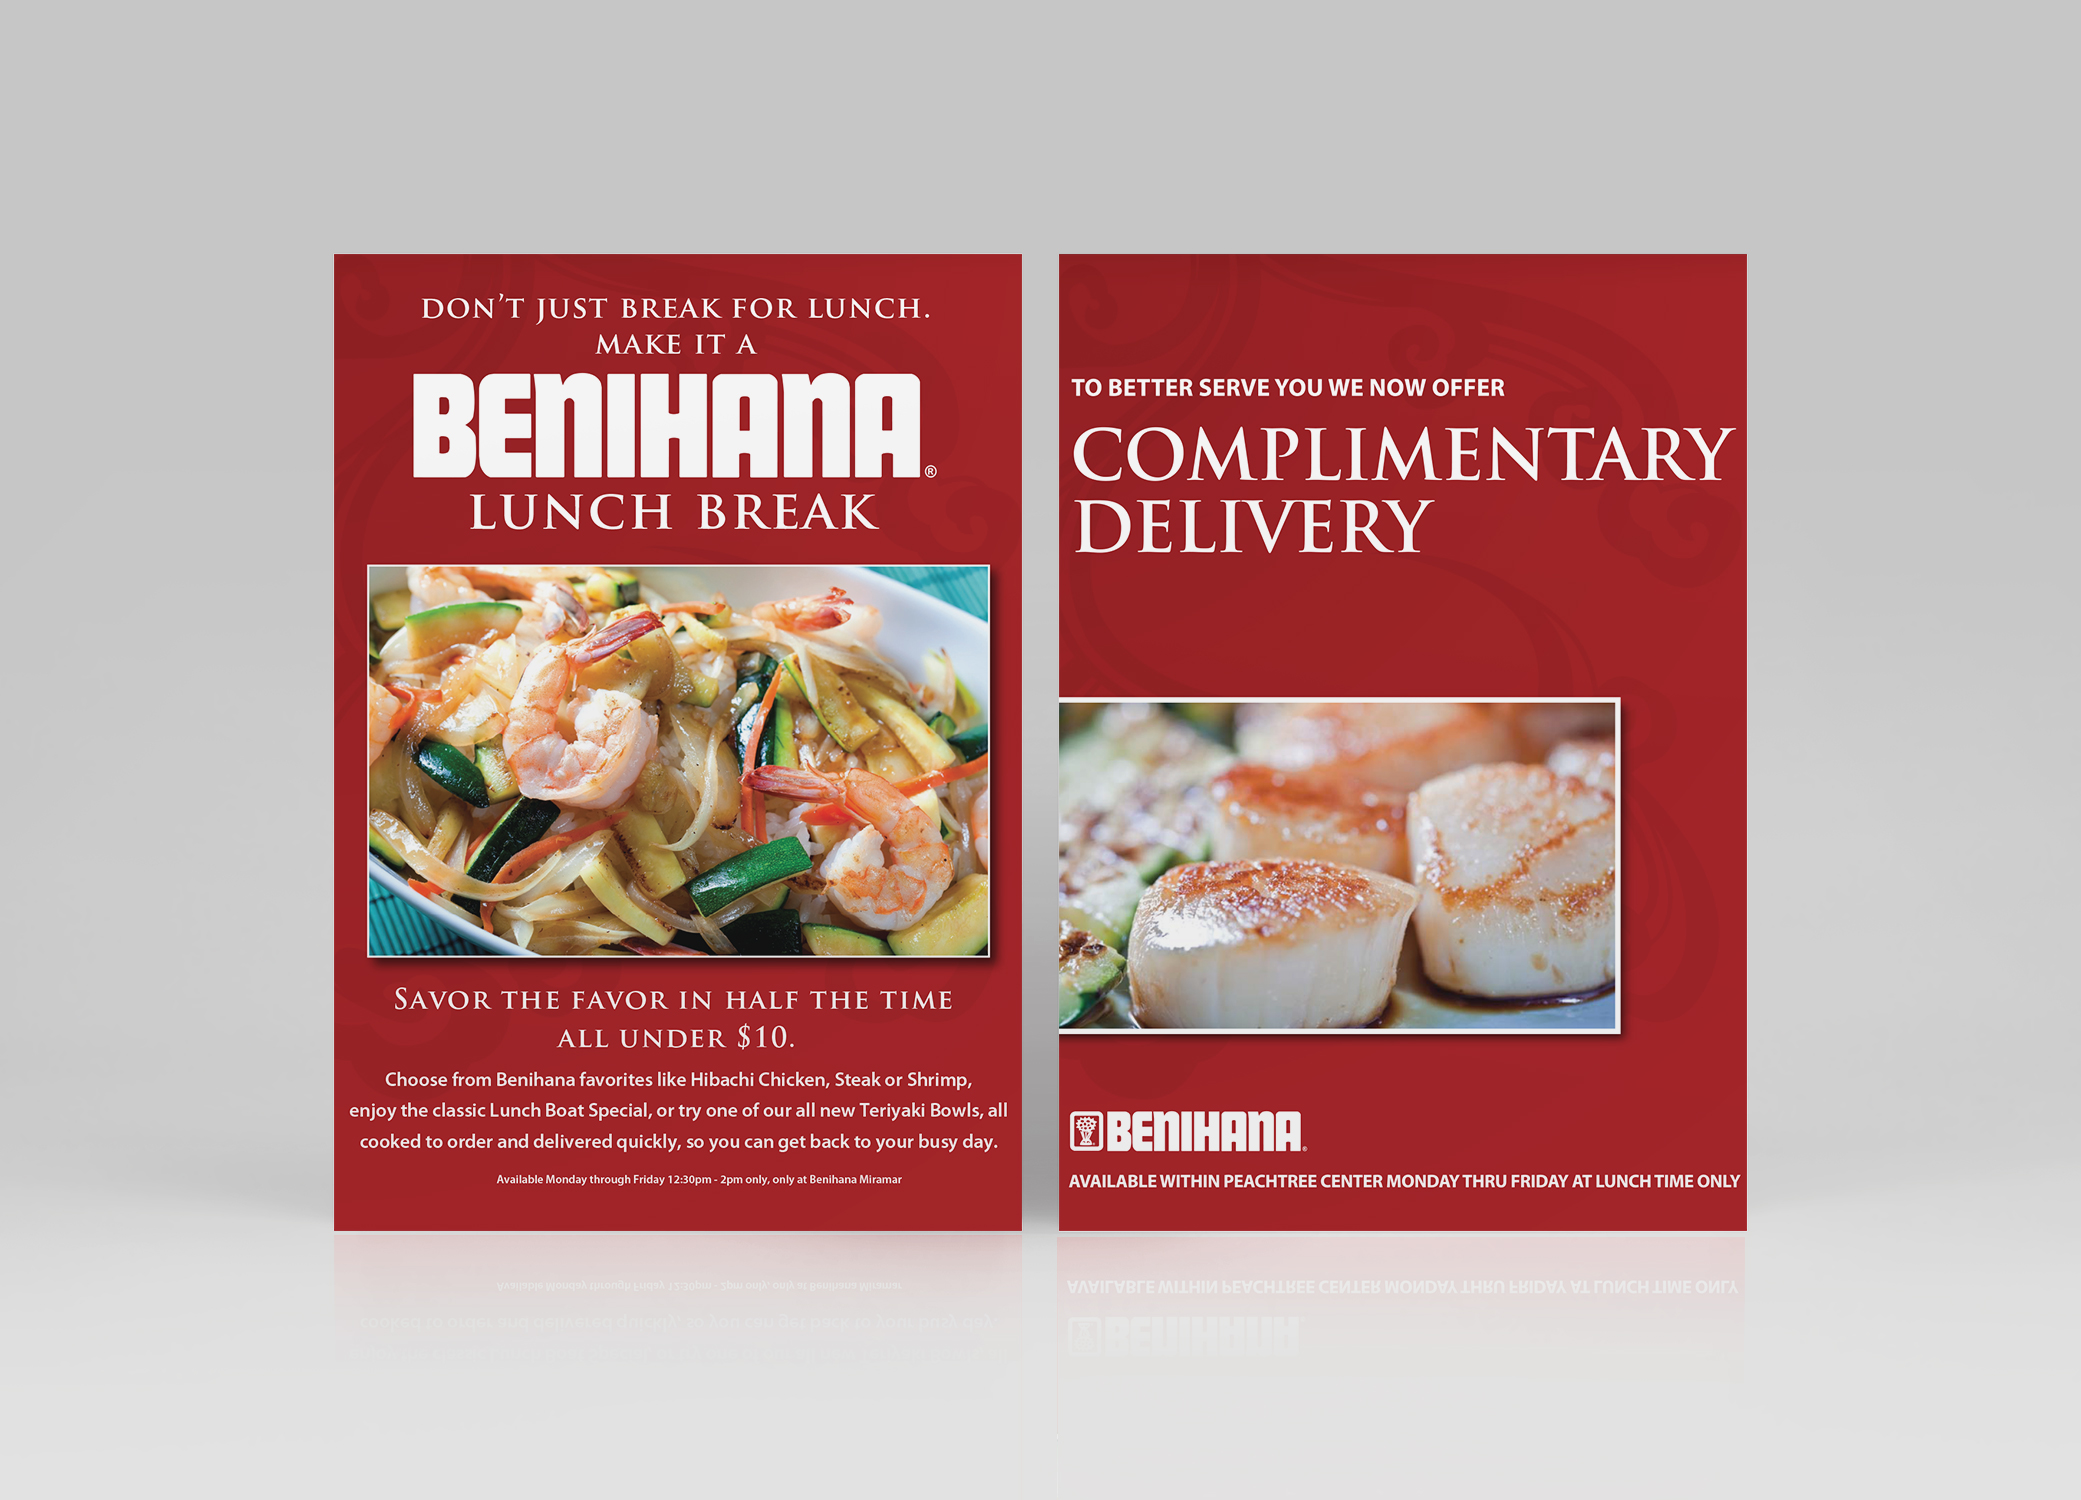 Benihana food brand design featuring Lunch Break and Complimentary Delivery flyers in red.